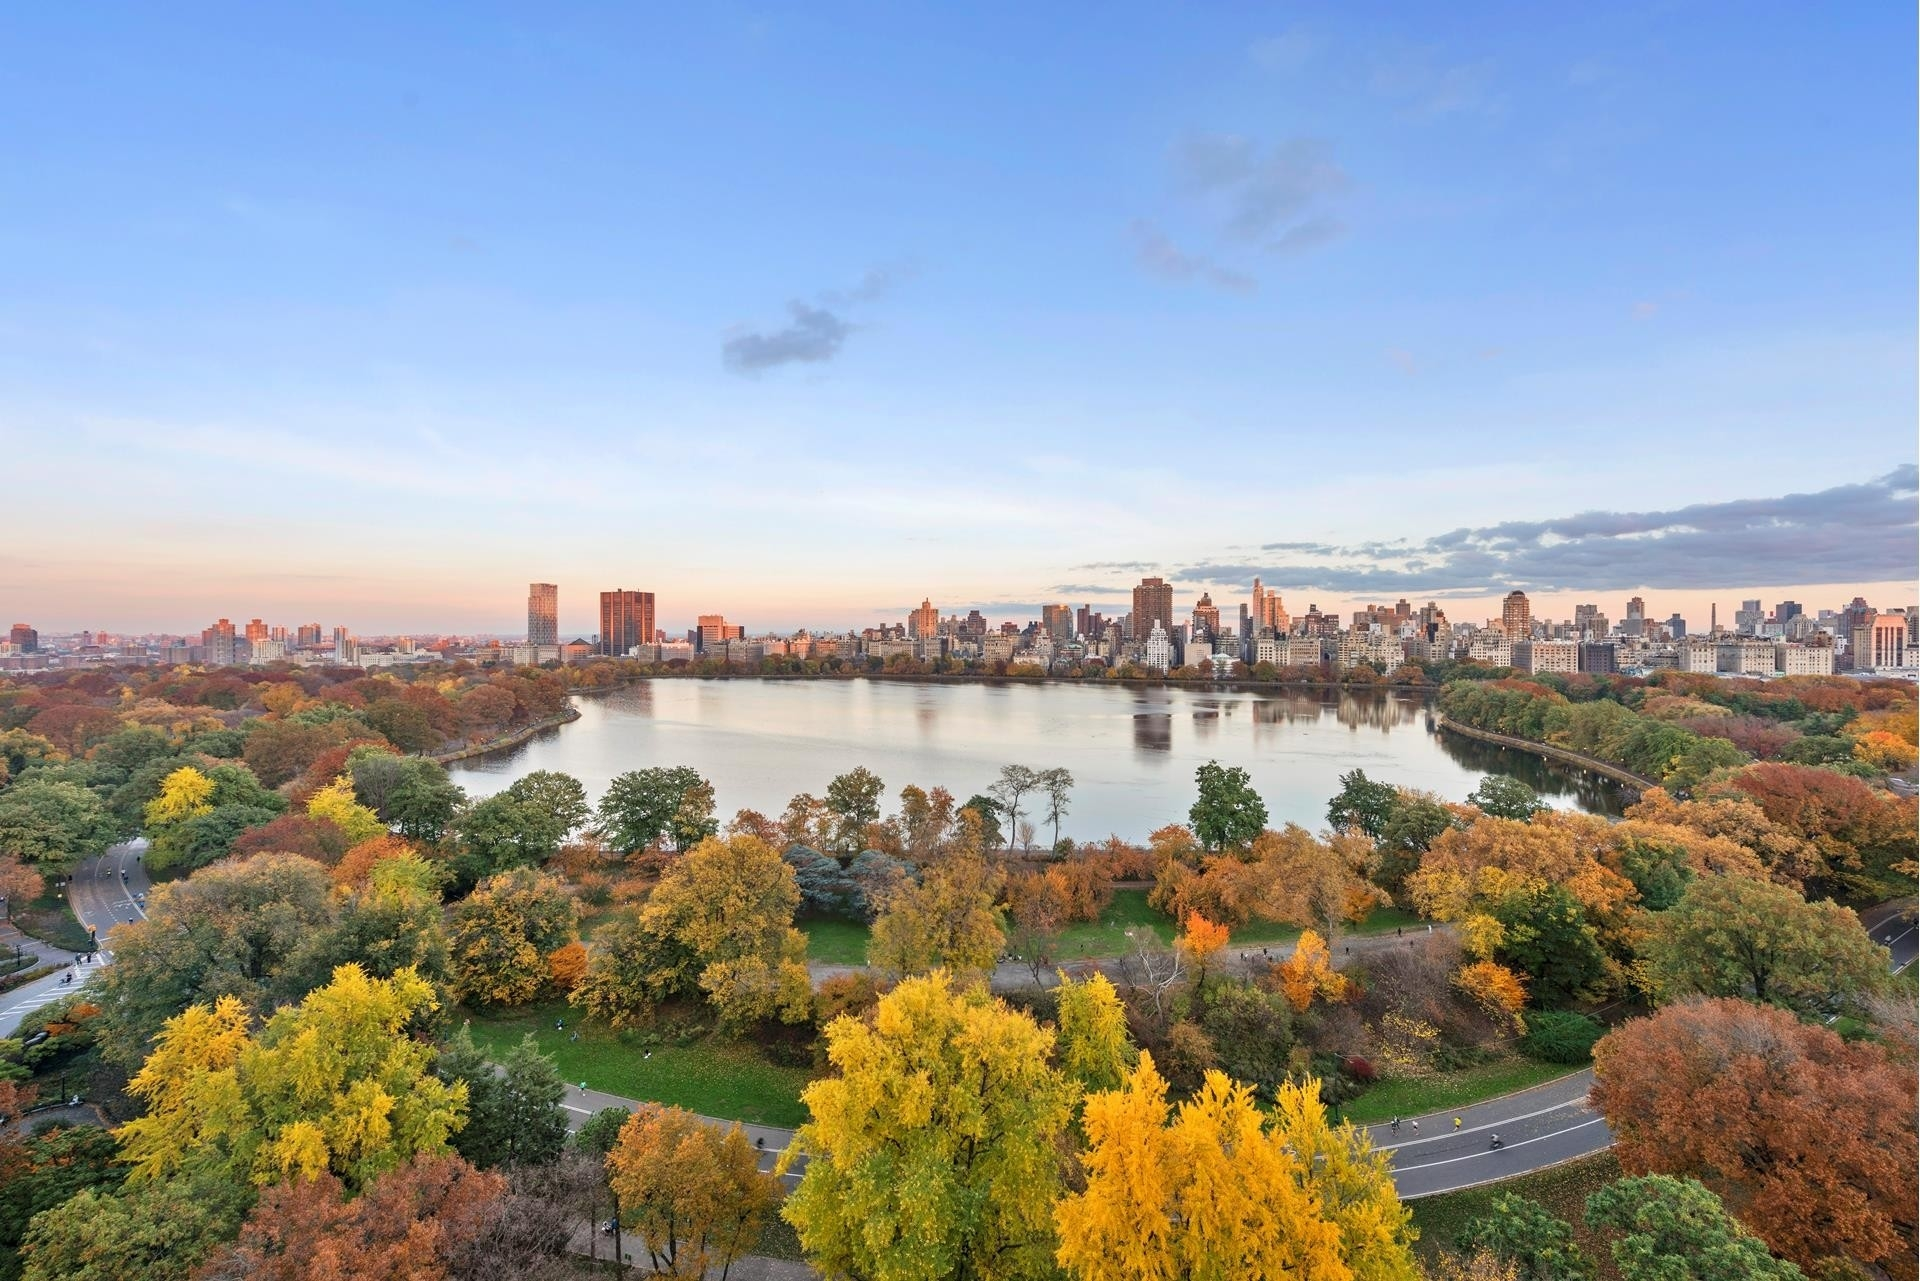 3. Condominiums for Sale at 279 CPW, 279 Central Park West, PHBA Upper West Side, New York, NY 10024